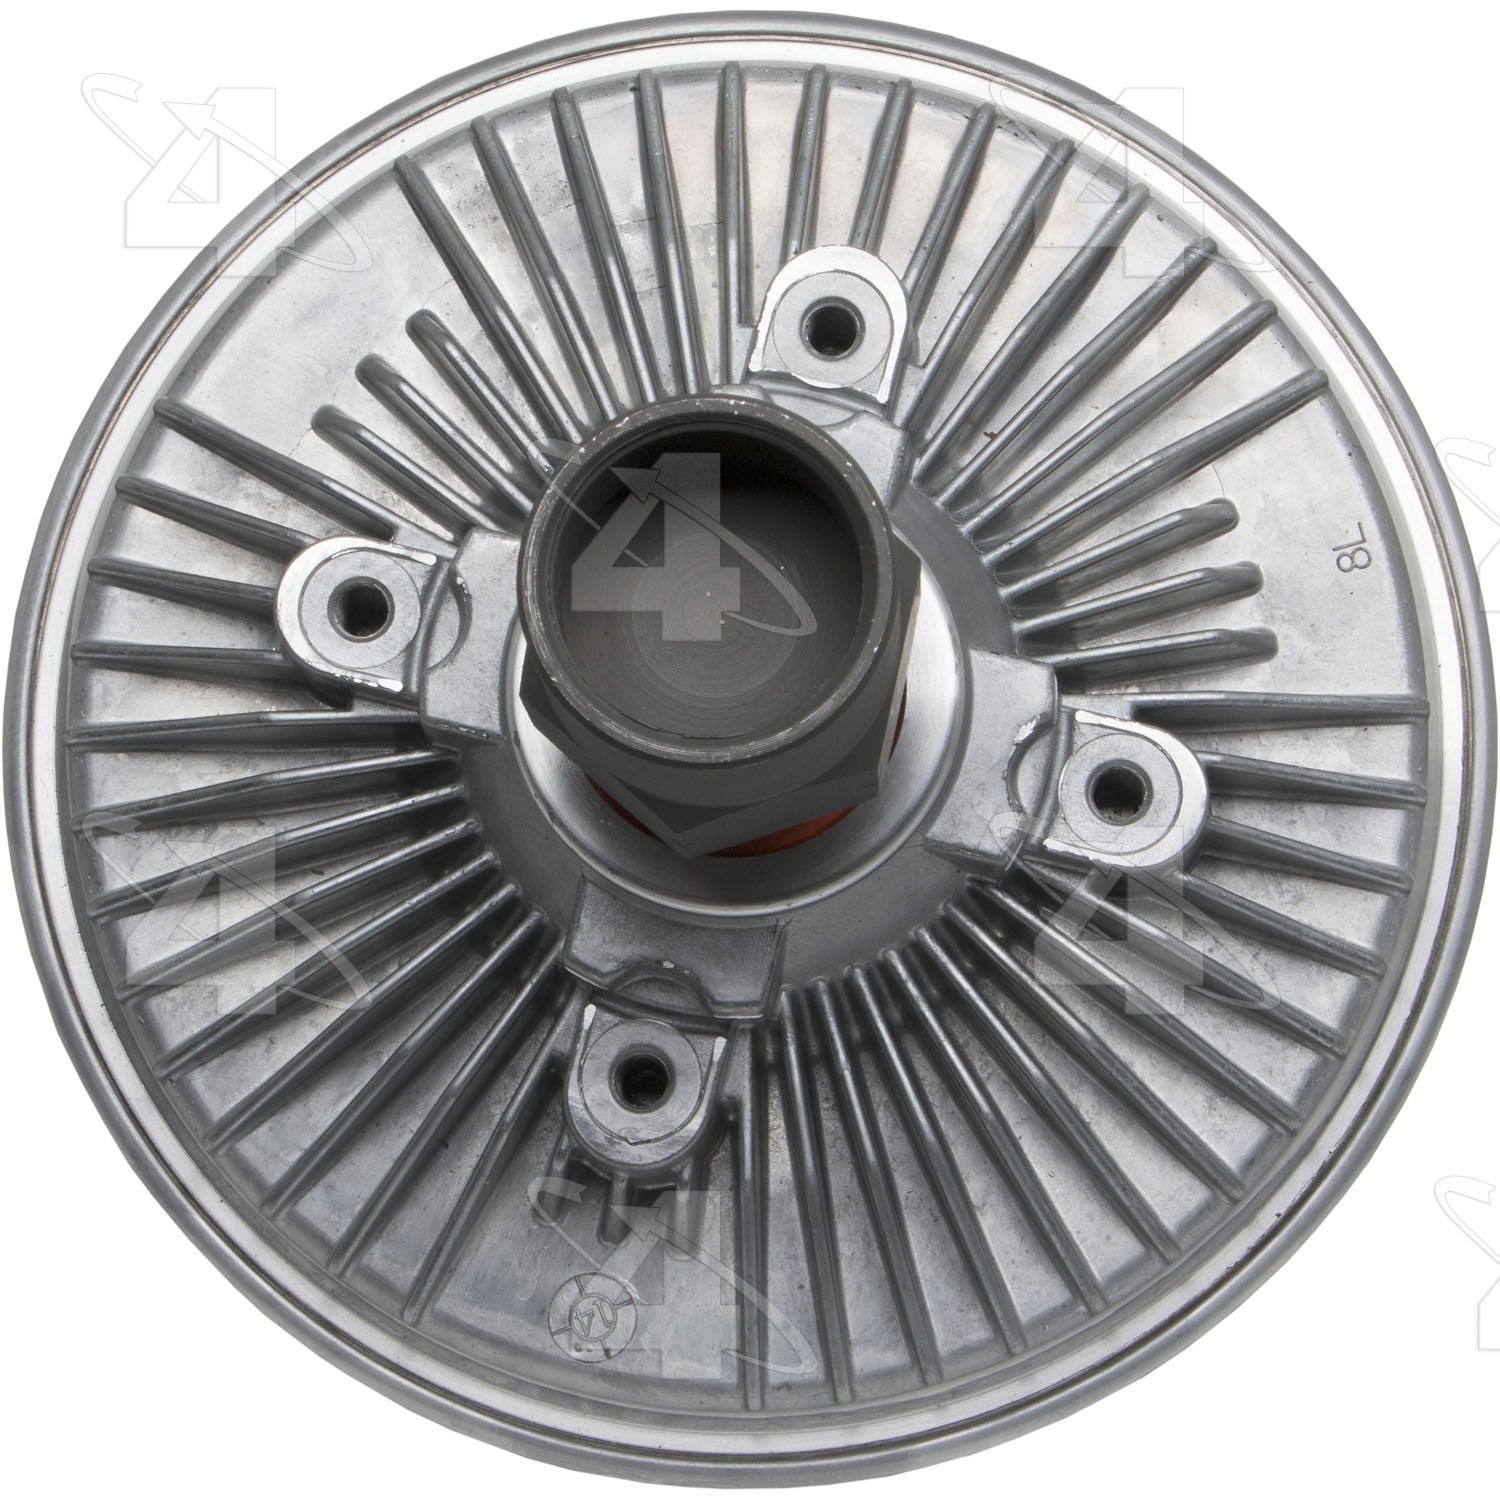 hight resolution of  2007 ford ranger engine cooling fan clutch fs 36730